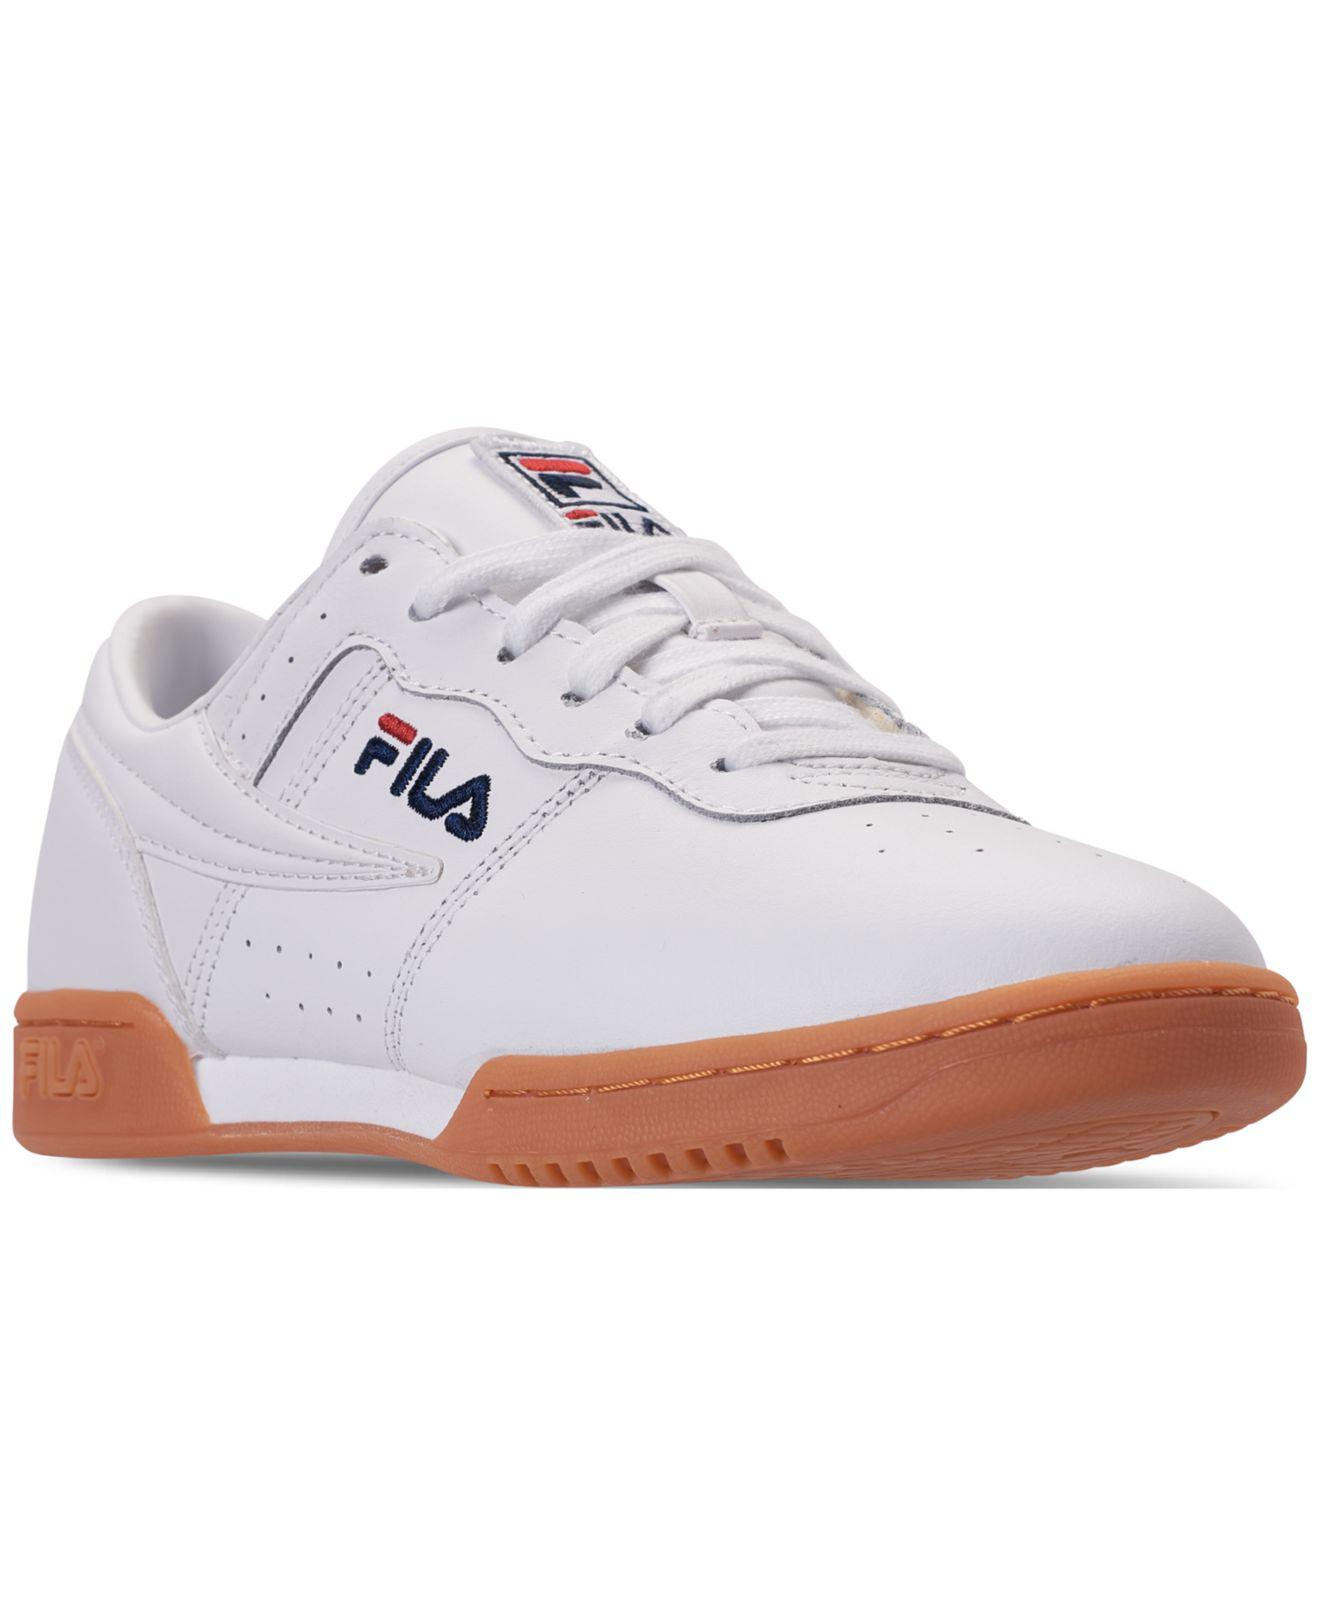 fc25e5022c8e Lyst - Fila Original Fitness Casual Athletic Sneakers From Finish ...